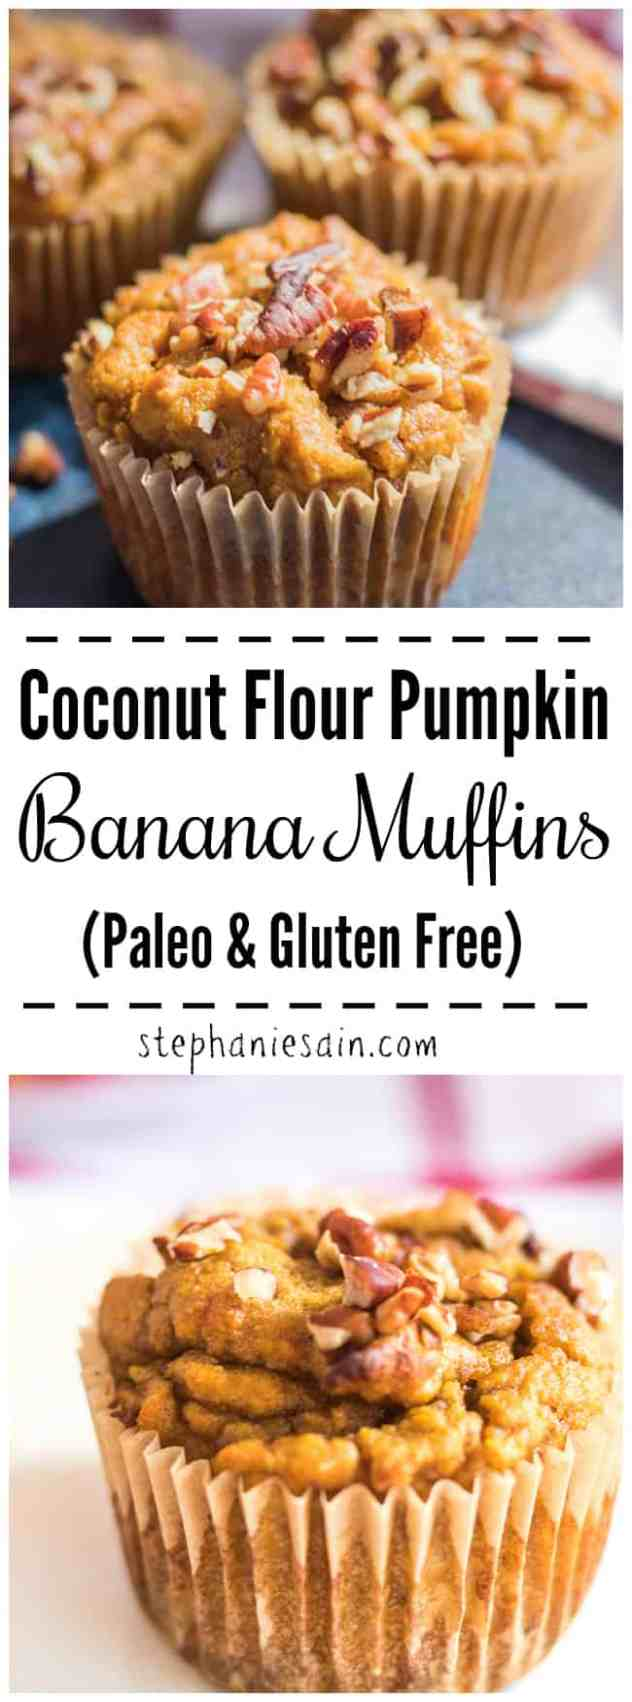 These Coconut Flour Pumpkin Banana Muffins are flavored with all the Fall seasonings. Deliciously moist, easy to prepare and a great healthy breakfast or snack. Also perfect for lunch boxes. Paleo, GF, & No Added Refined Sugars.